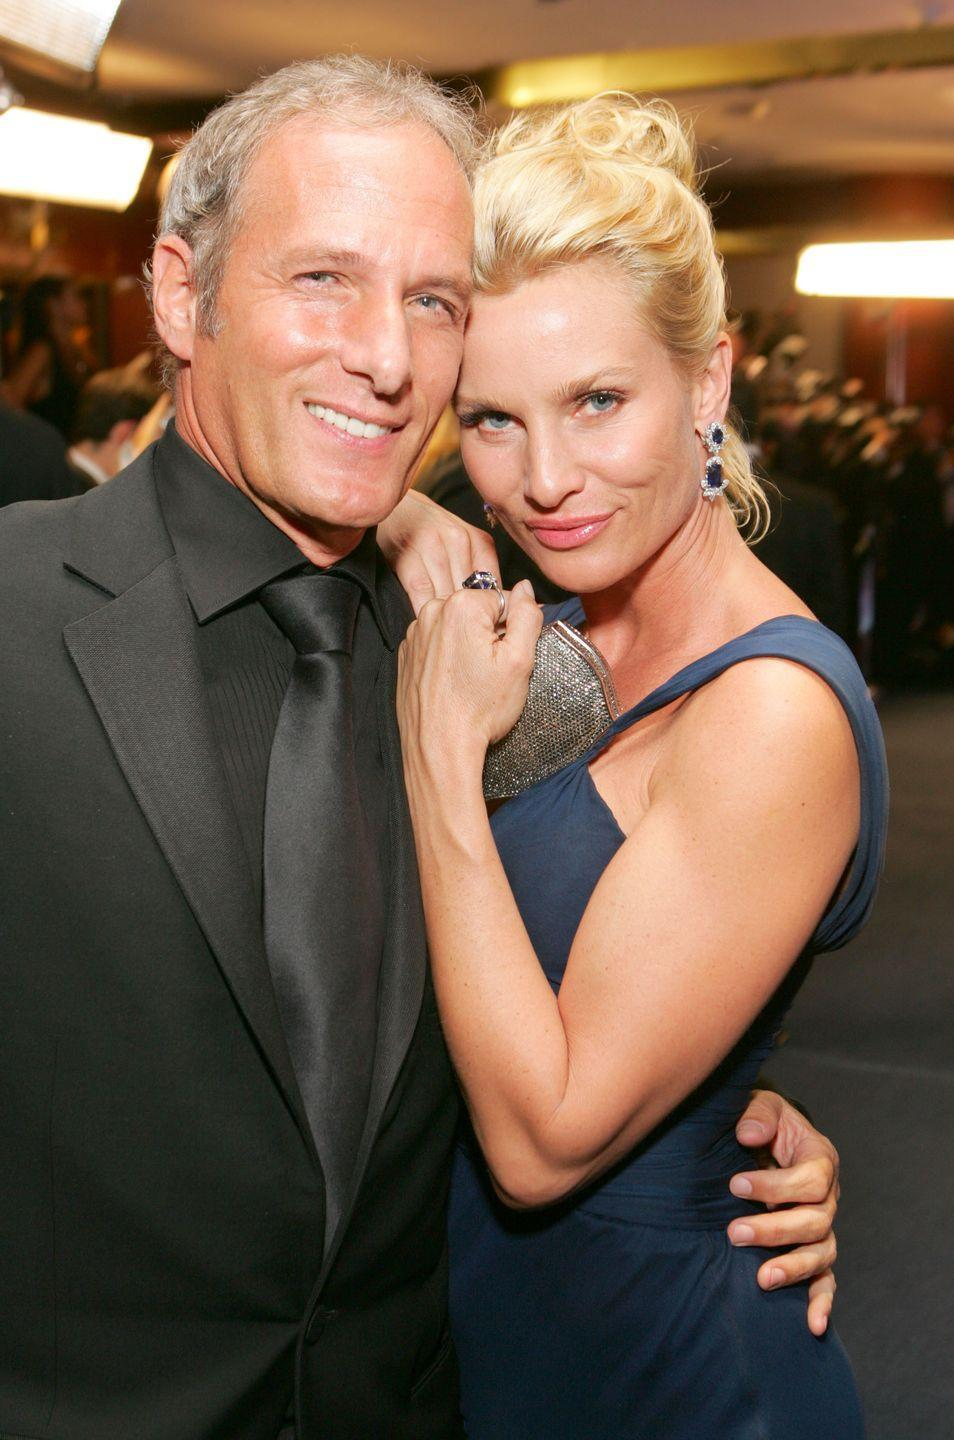 """<p>2008 marked the end of a longtime relationship between the musician and his <em>Desperate Housewives </em>fiancée<em>. </em>The couple dated for five years, beginning in 1992. Then they re-connected in 2005, getting engaged the following year. They confirmed their split in August 2008 to <em><a href=""""https://people.com/celebrity/nicollette-sheridan-michael-bolton-end-engagement/"""" rel=""""nofollow noopener"""" target=""""_blank"""" data-ylk=""""slk:People"""" class=""""link rapid-noclick-resp"""">People</a></em>.<br></p>"""